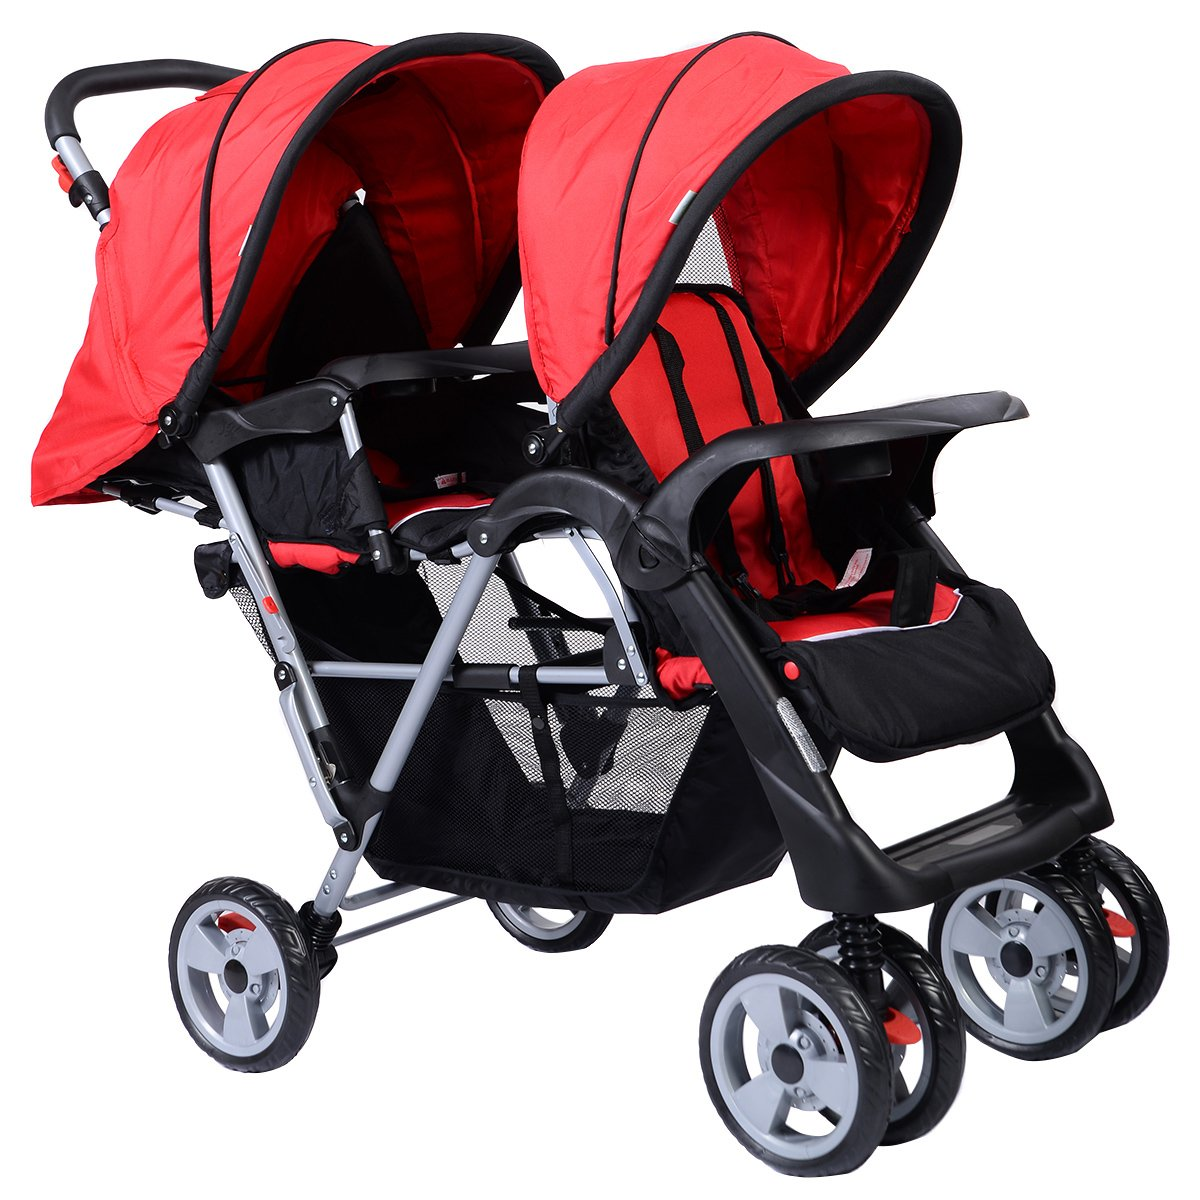 Costzon Double Stroller Infant Baby Pushchair Convenience Twin Seat (Red)